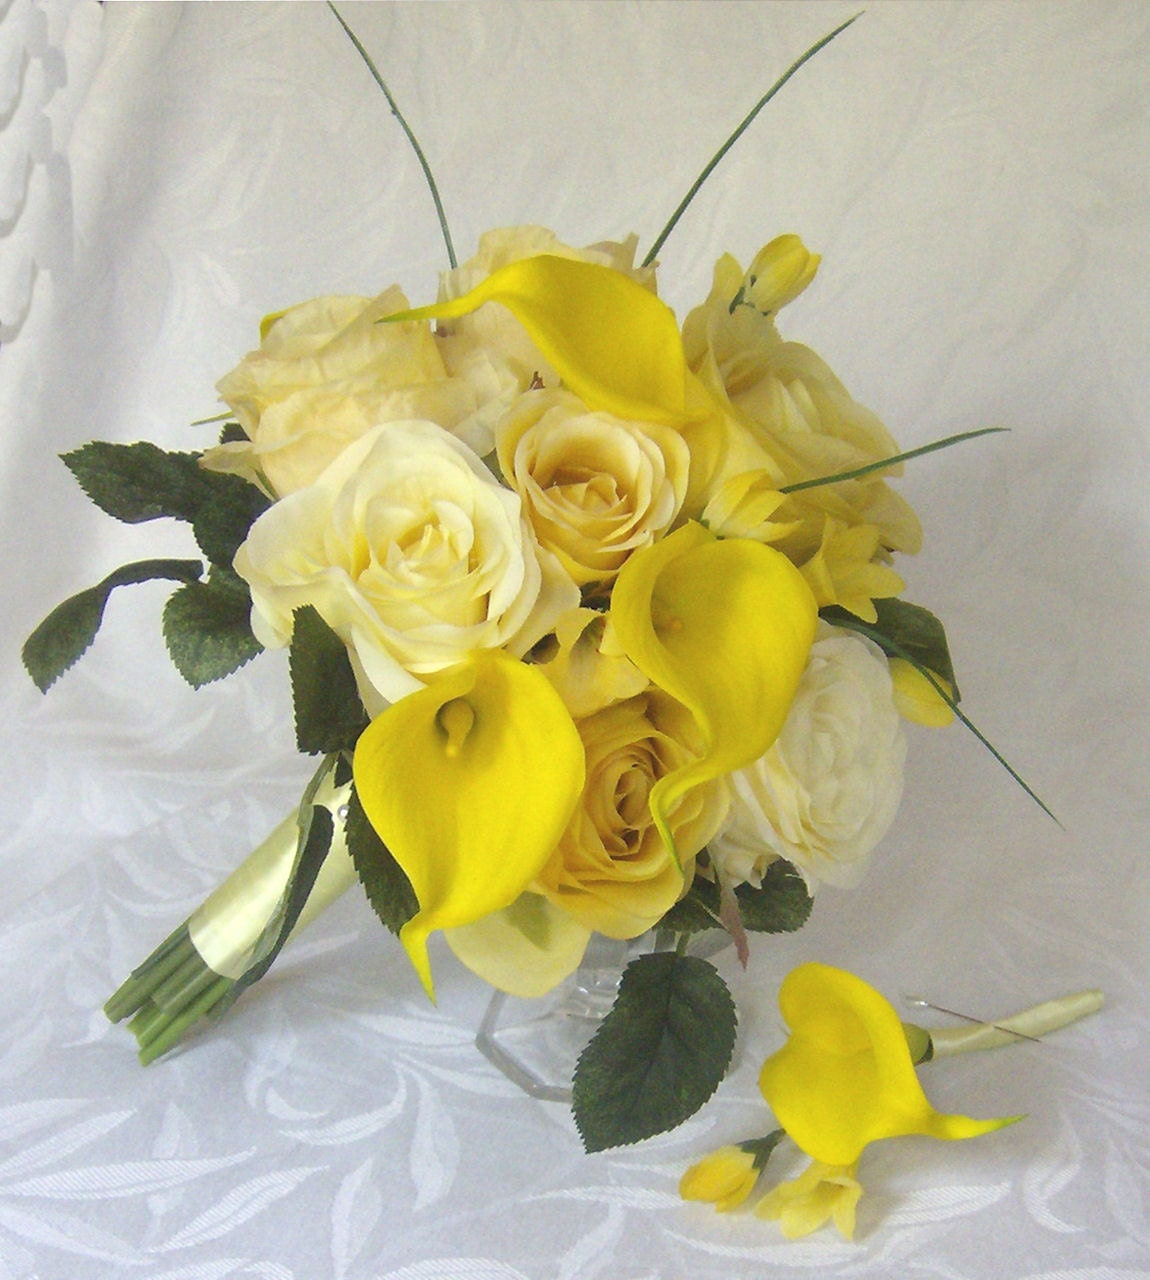 Lily Flower Wedding Bouquet: Yellow Rose Wedding Calla Lily Wedding Bouquet Real Touch